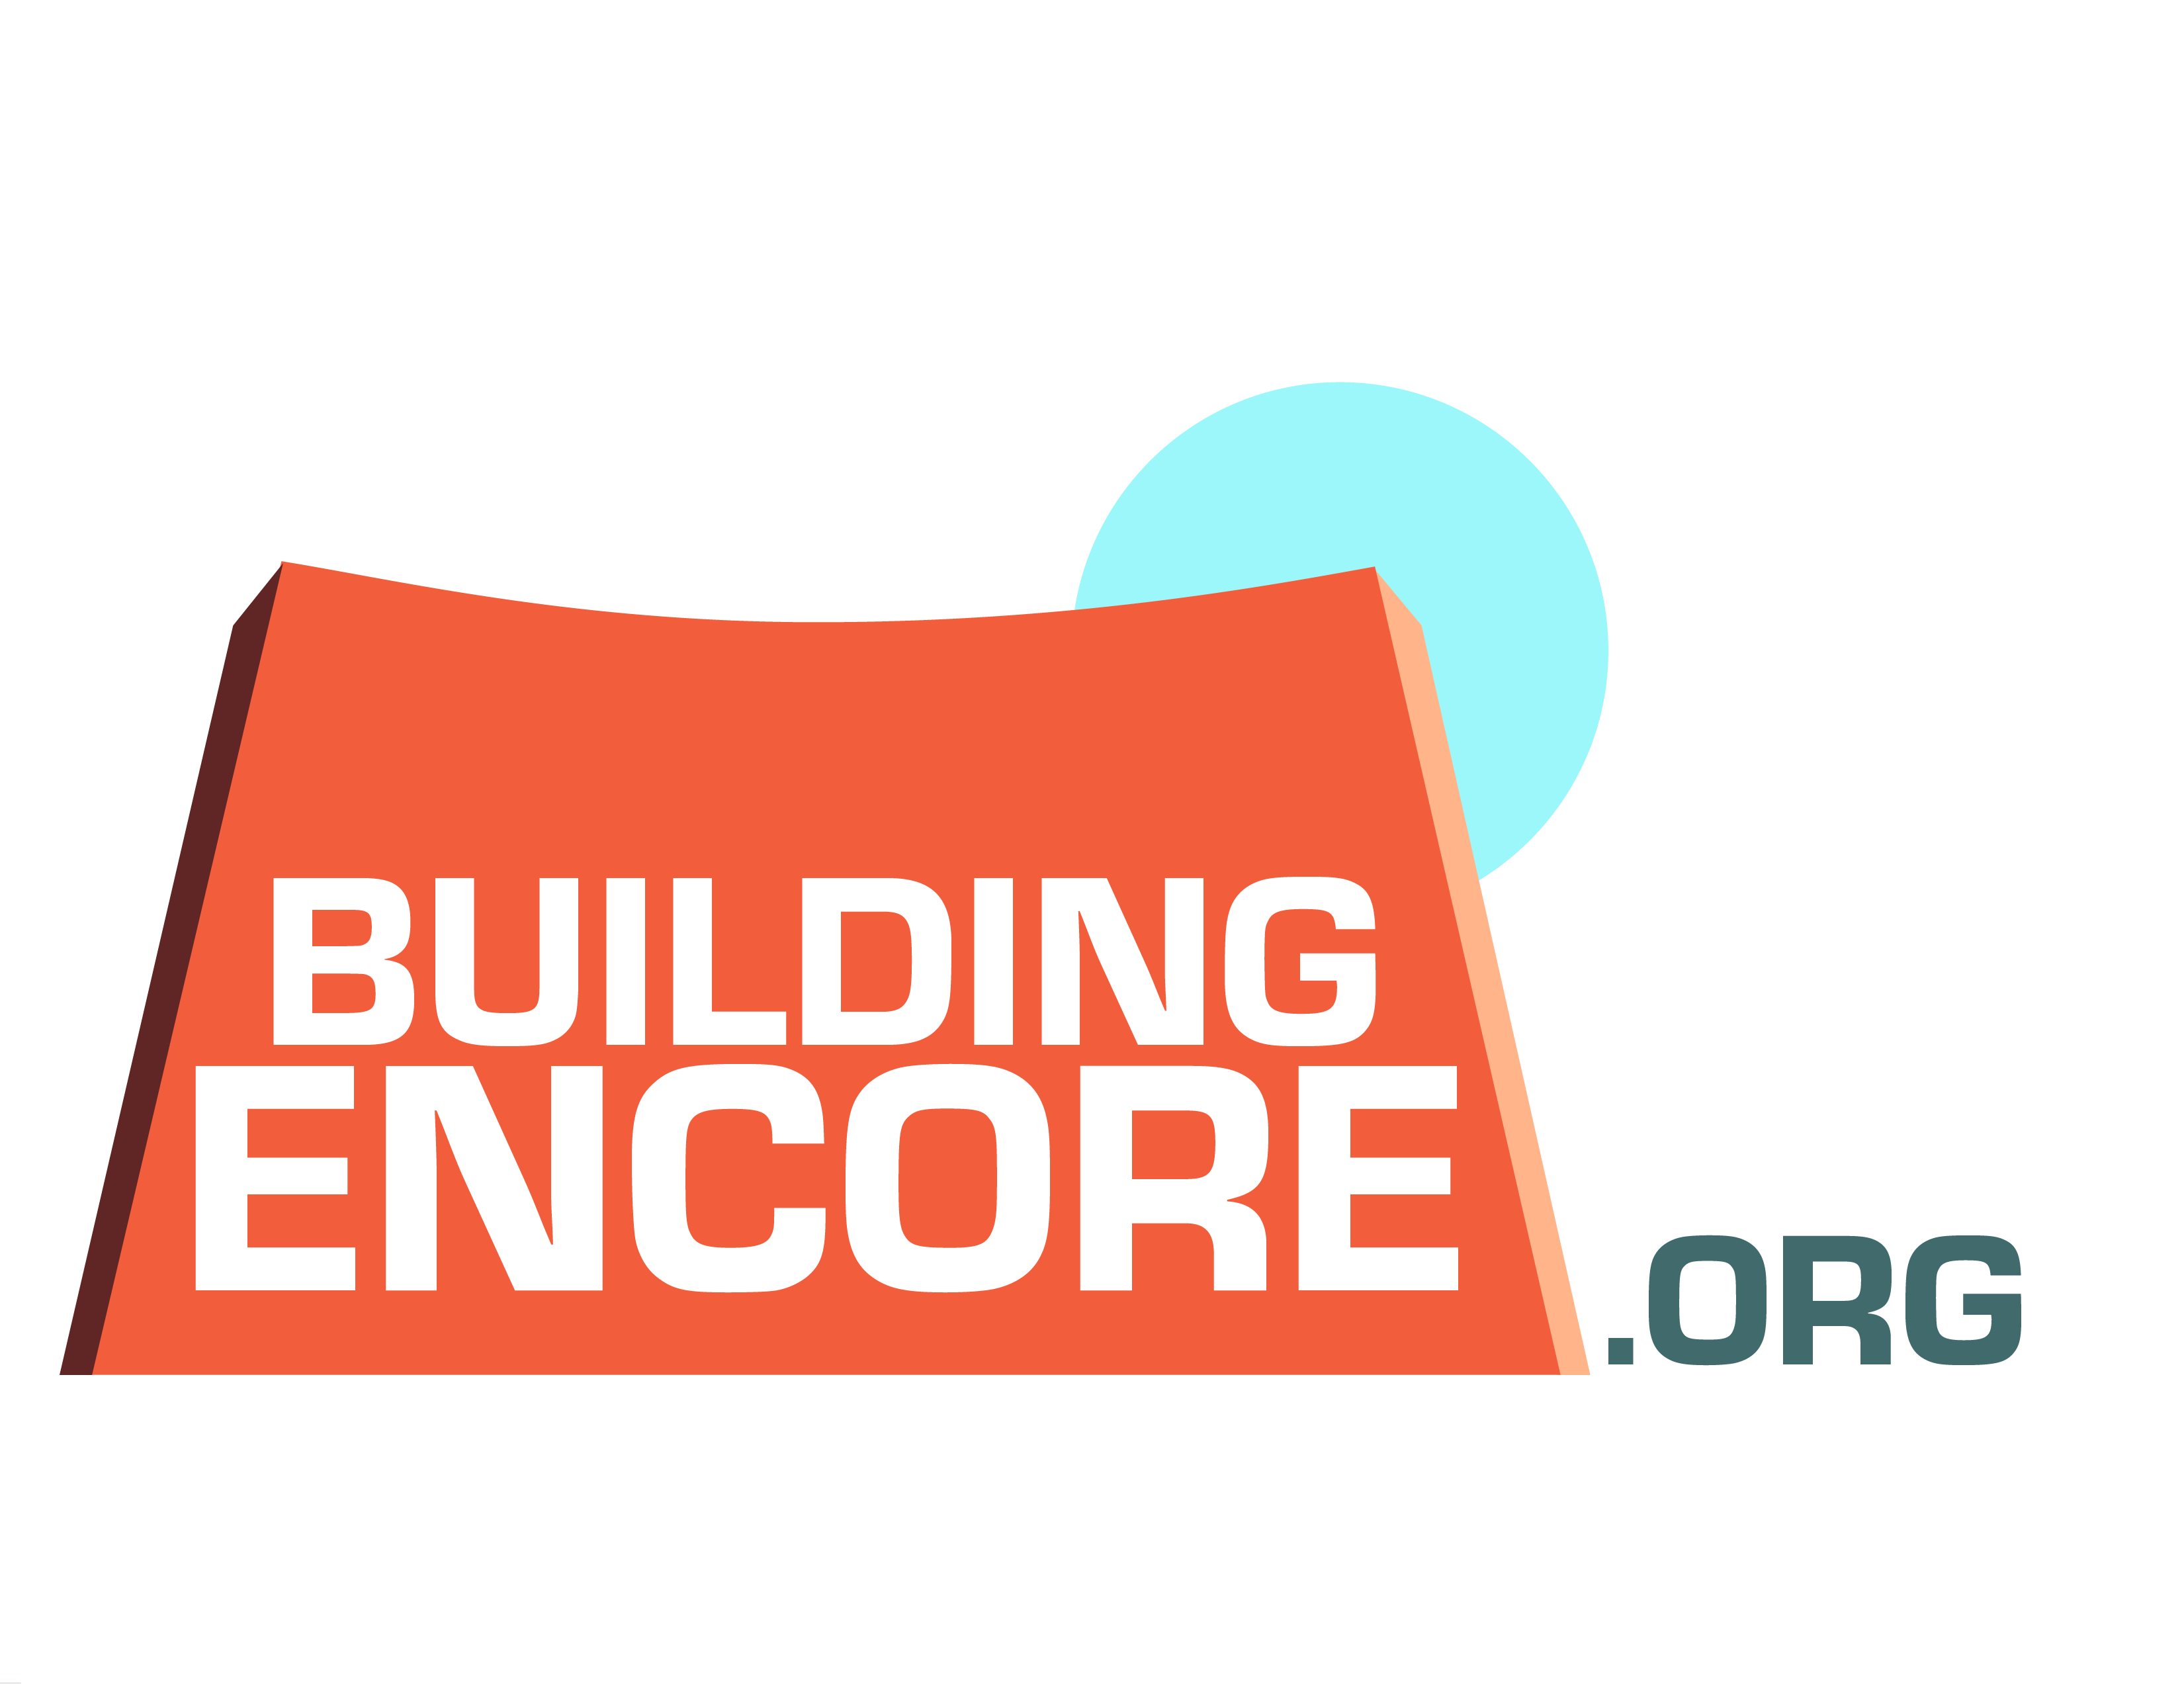 Building Encore